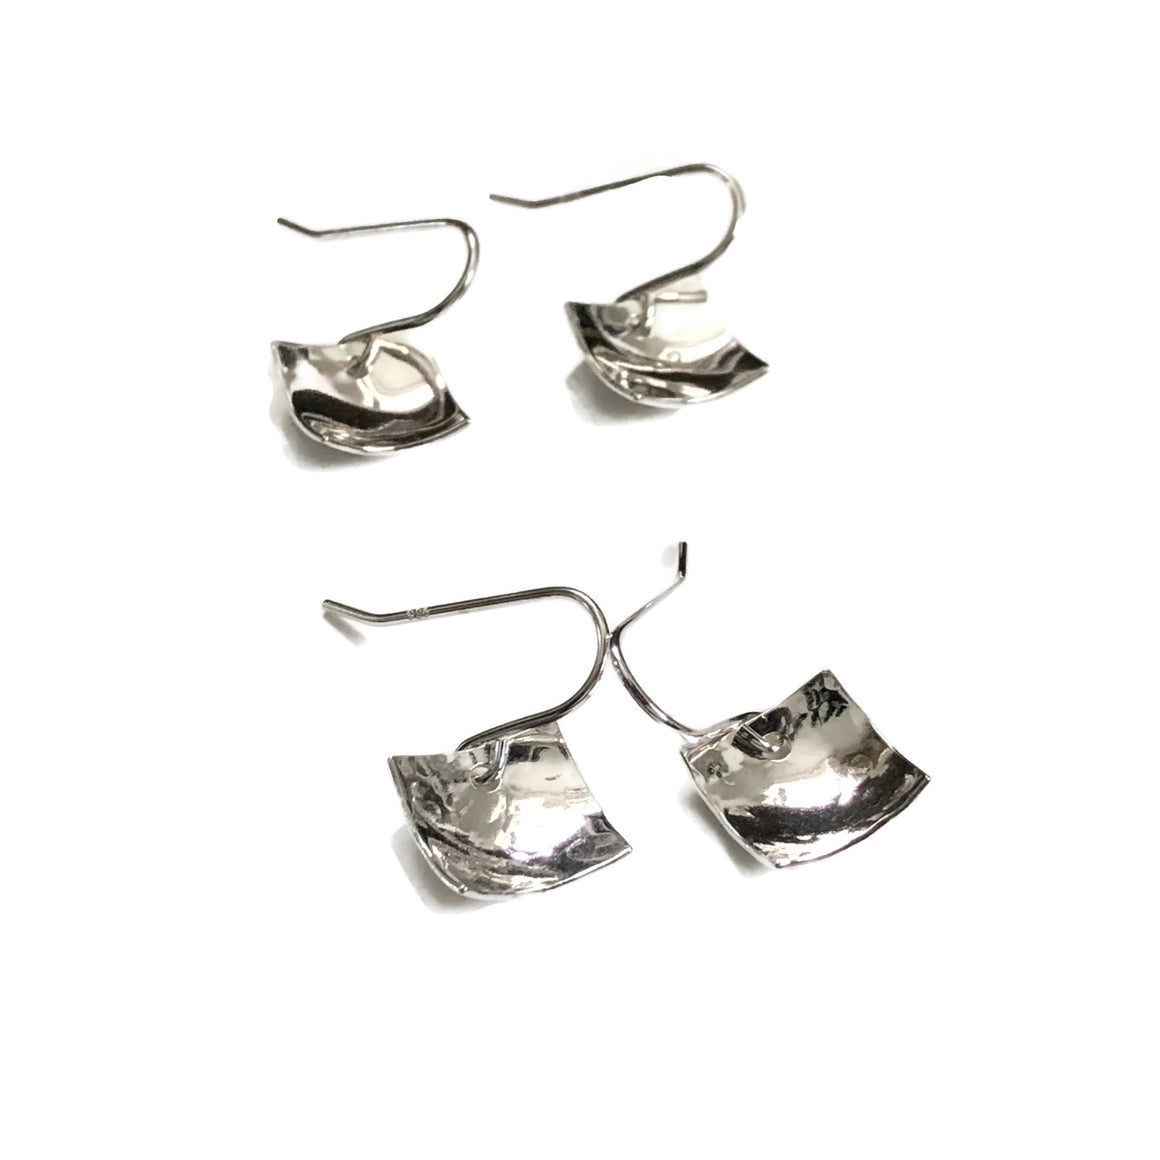 Concave sterling silver square earrings, both hammered and shiny